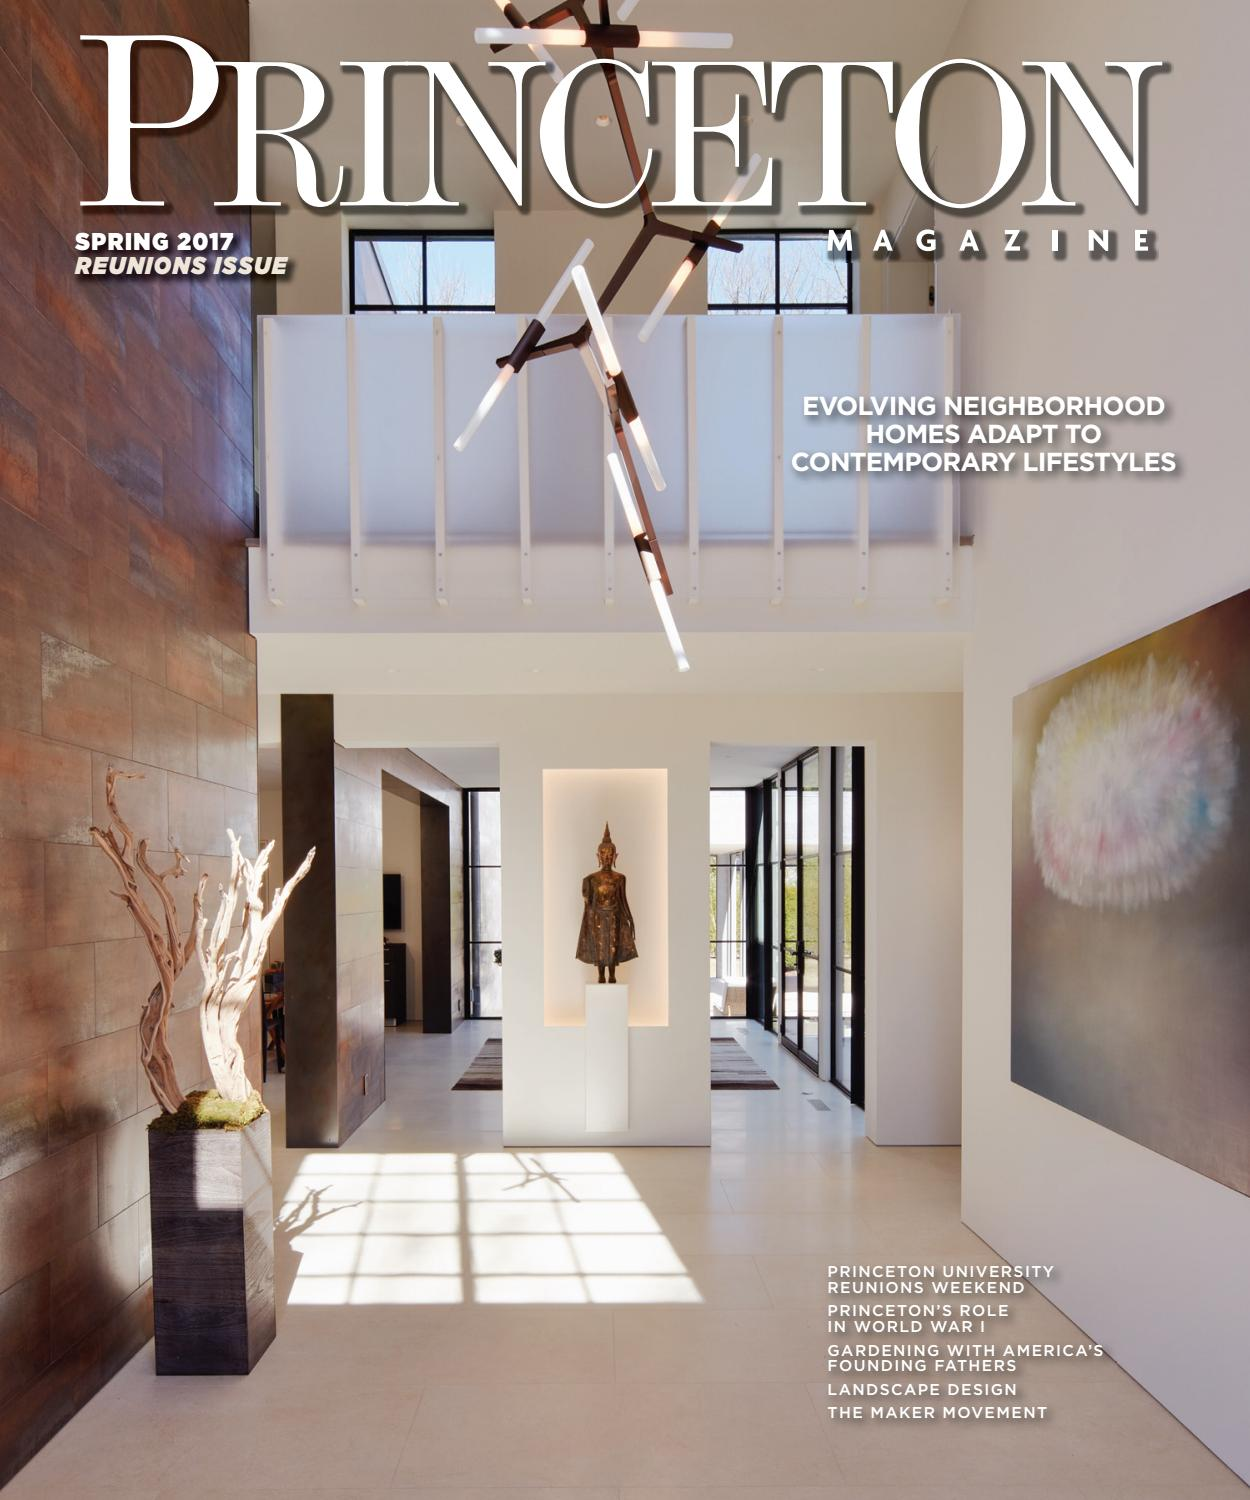 serie 142 chair kiosk design purple sashes for weddings princeton magazine spring 2017 by witherspoon media group issuu